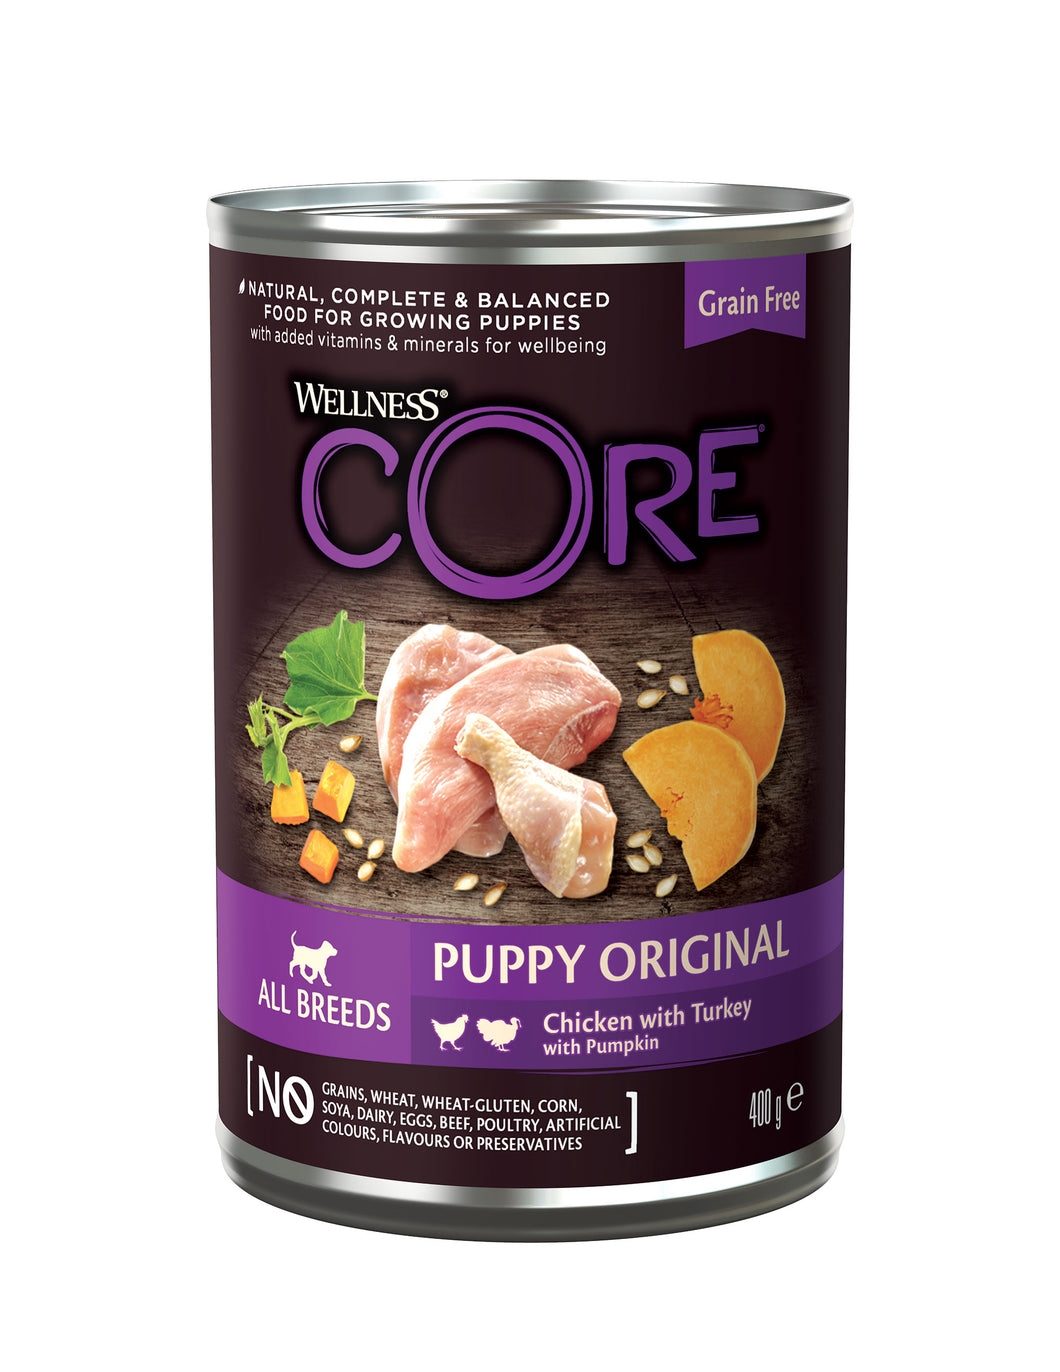 Wellness CORE Can Puppy Turkey, Chicken and Pumpkin 6 x 400g